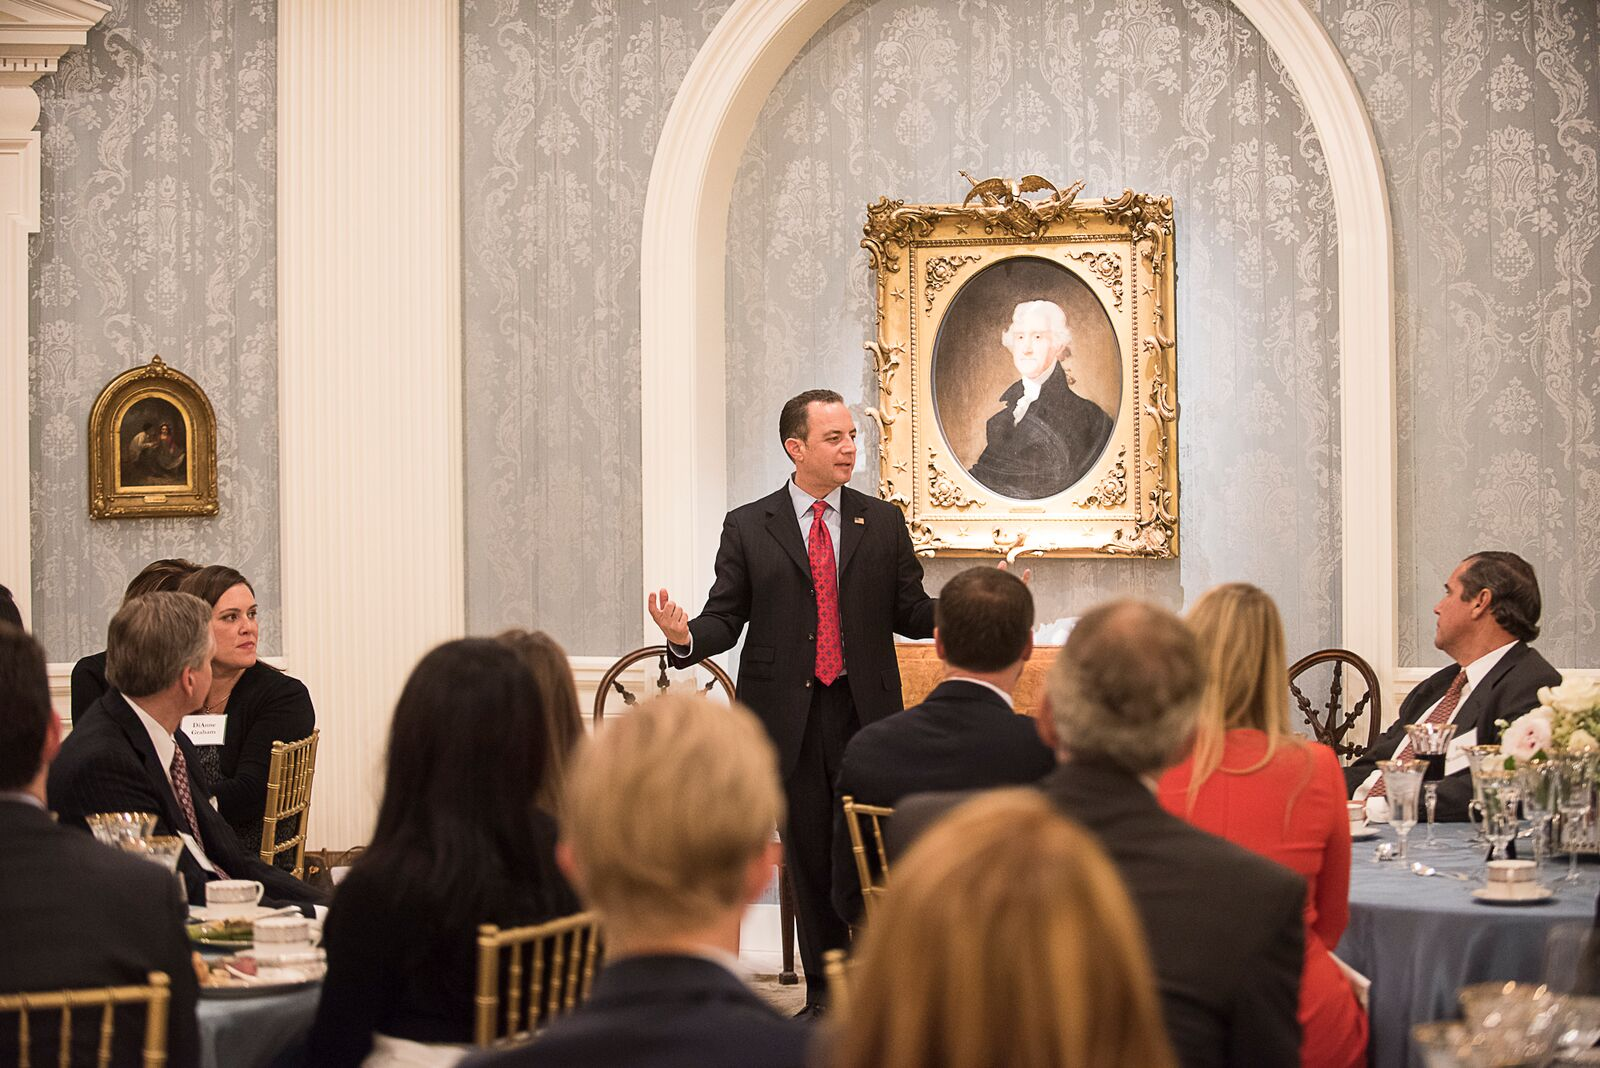 RNC Chairman Reince Priebus speaks to supporters at the RNC Presidential Trust Dinner at Old Parkland in 2015.